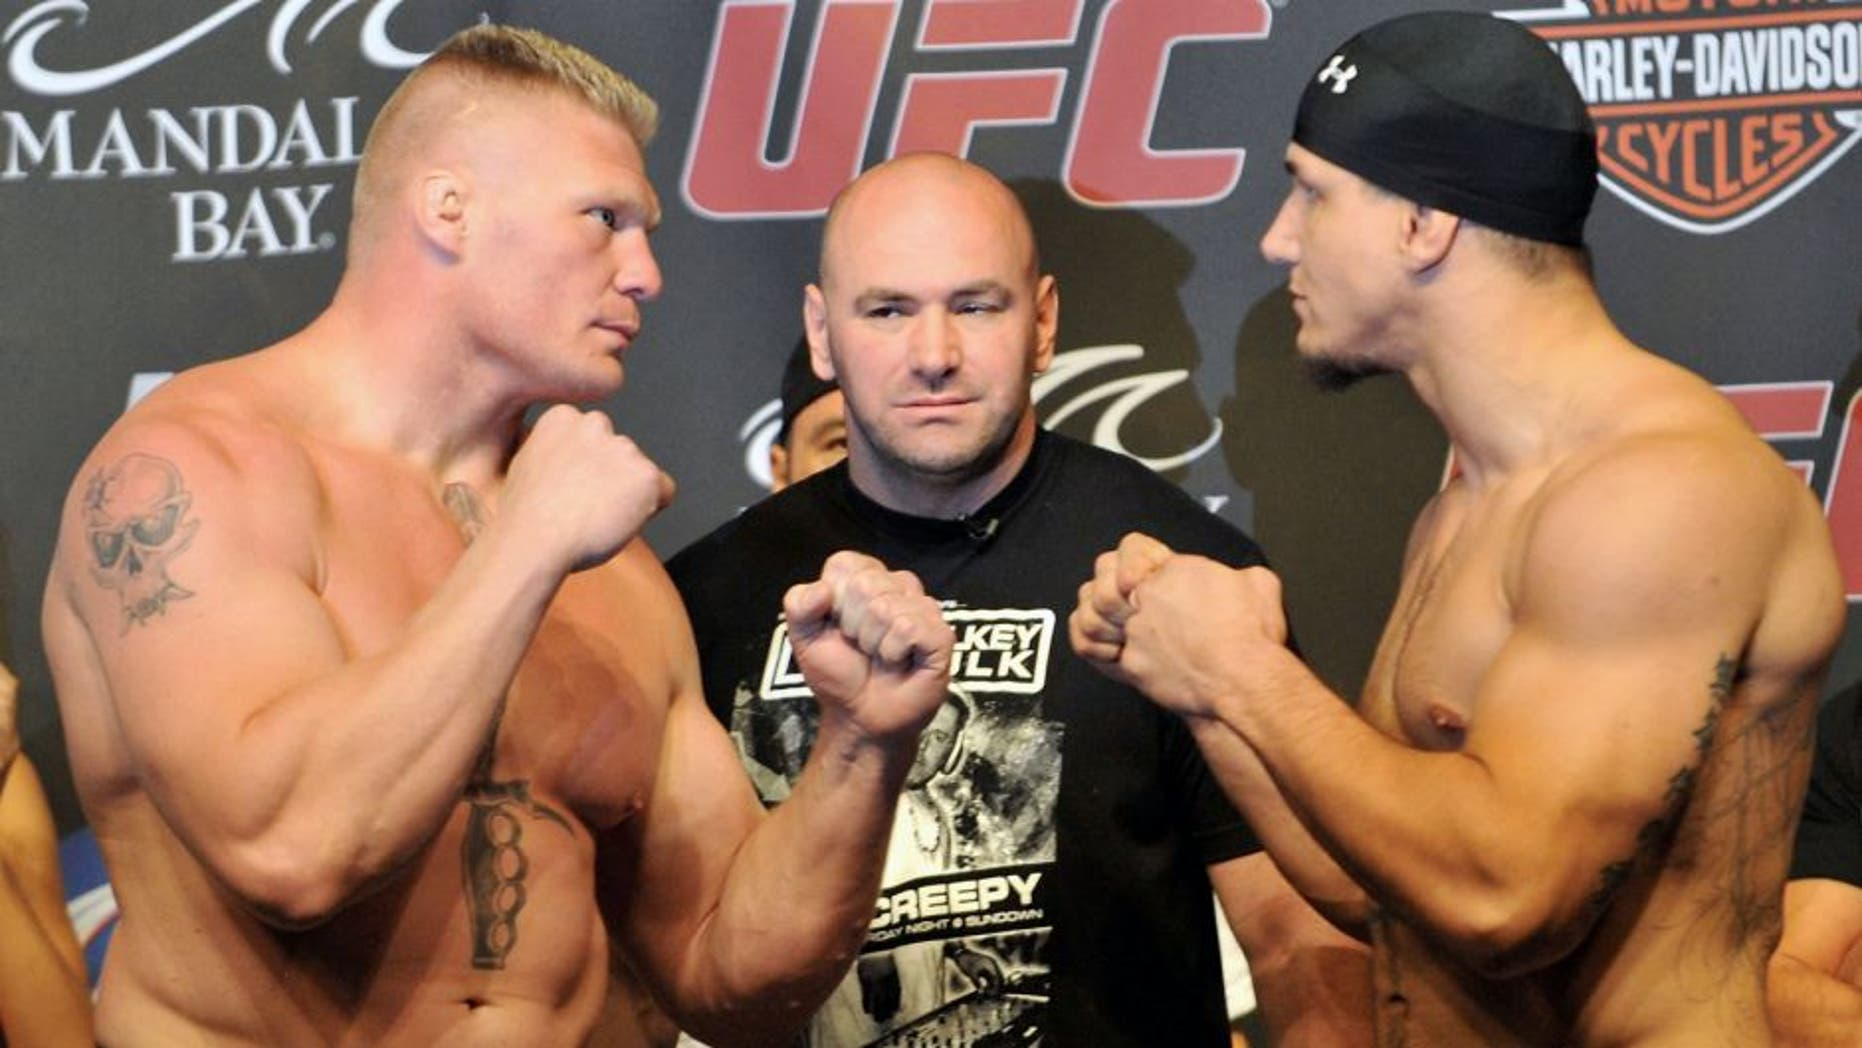 LAS VEGAS - JULY 10: UFC heavyweight fighters Brock Lesnar (L) and Frank Mir (R) square off at UFC 100 Weigh-Ins at the Mandalay Bay Hotel and Casino on July 10, 2009 in Las Vegas, Nevada. (Photo by Jon Kopaloff/Getty Images)